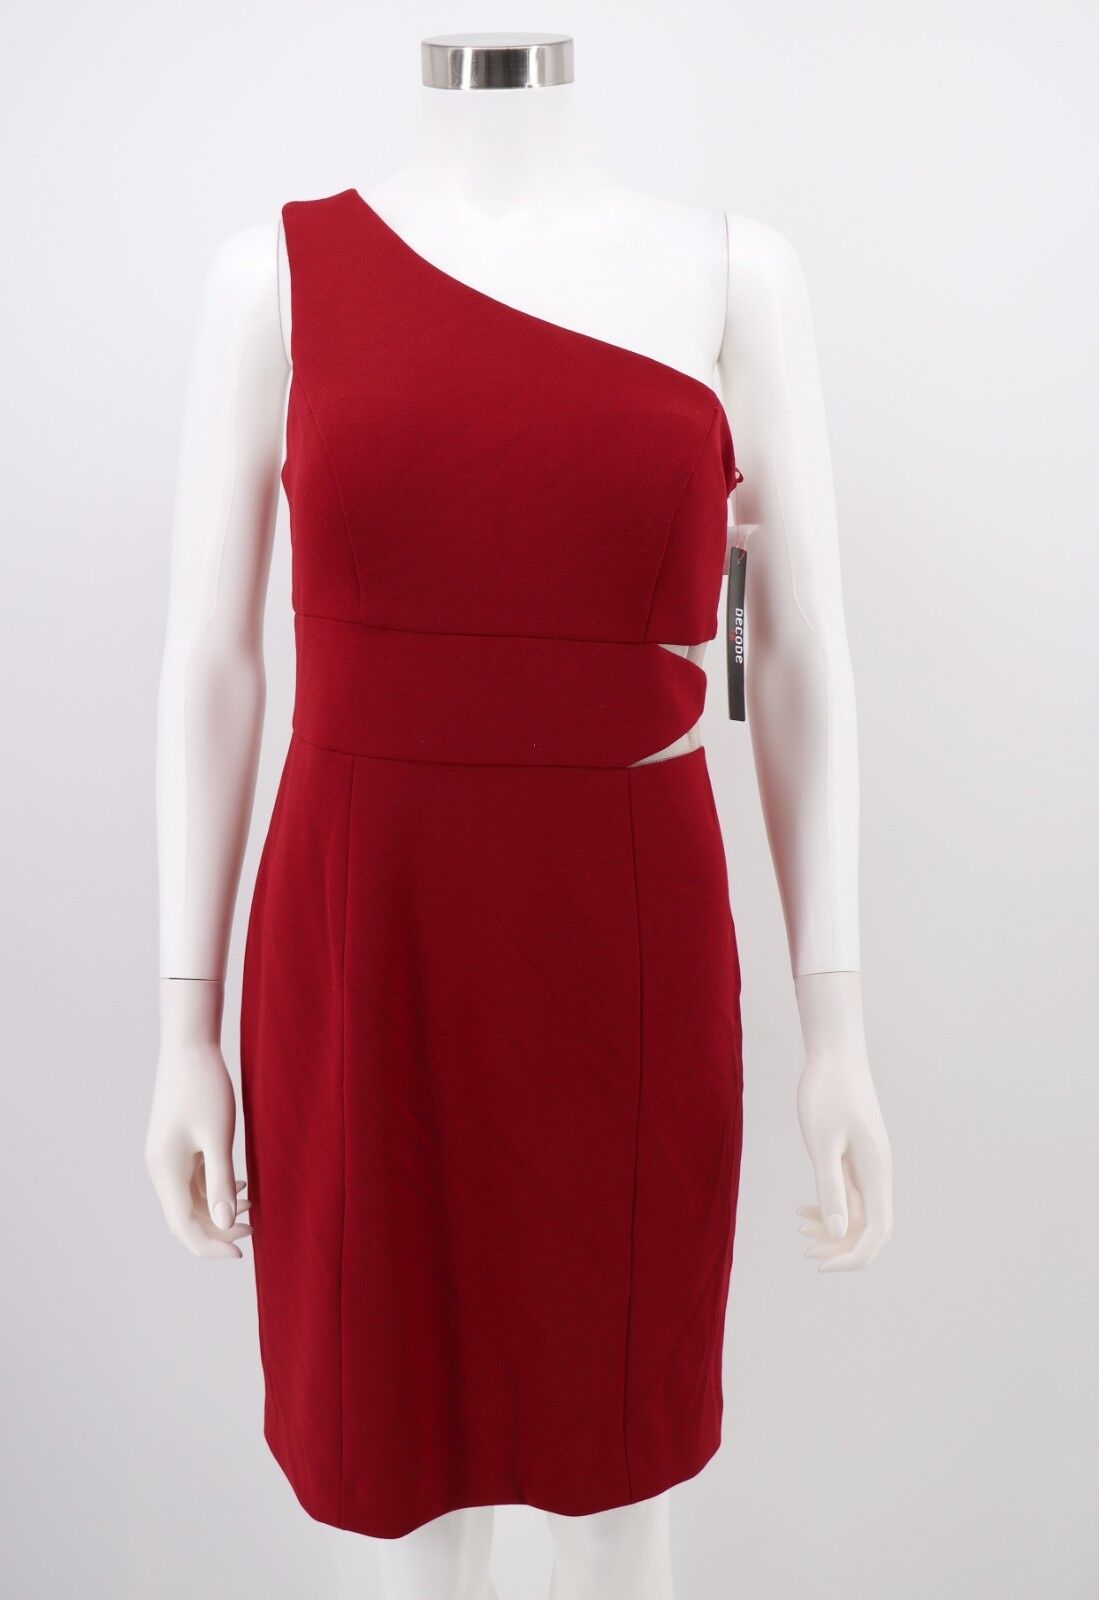 Decode 1.8 Dress 14 Womens NWT Red Stretch One-Shoulder One-Shoulder One-Shoulder Bodycon Sheath 14a6b7